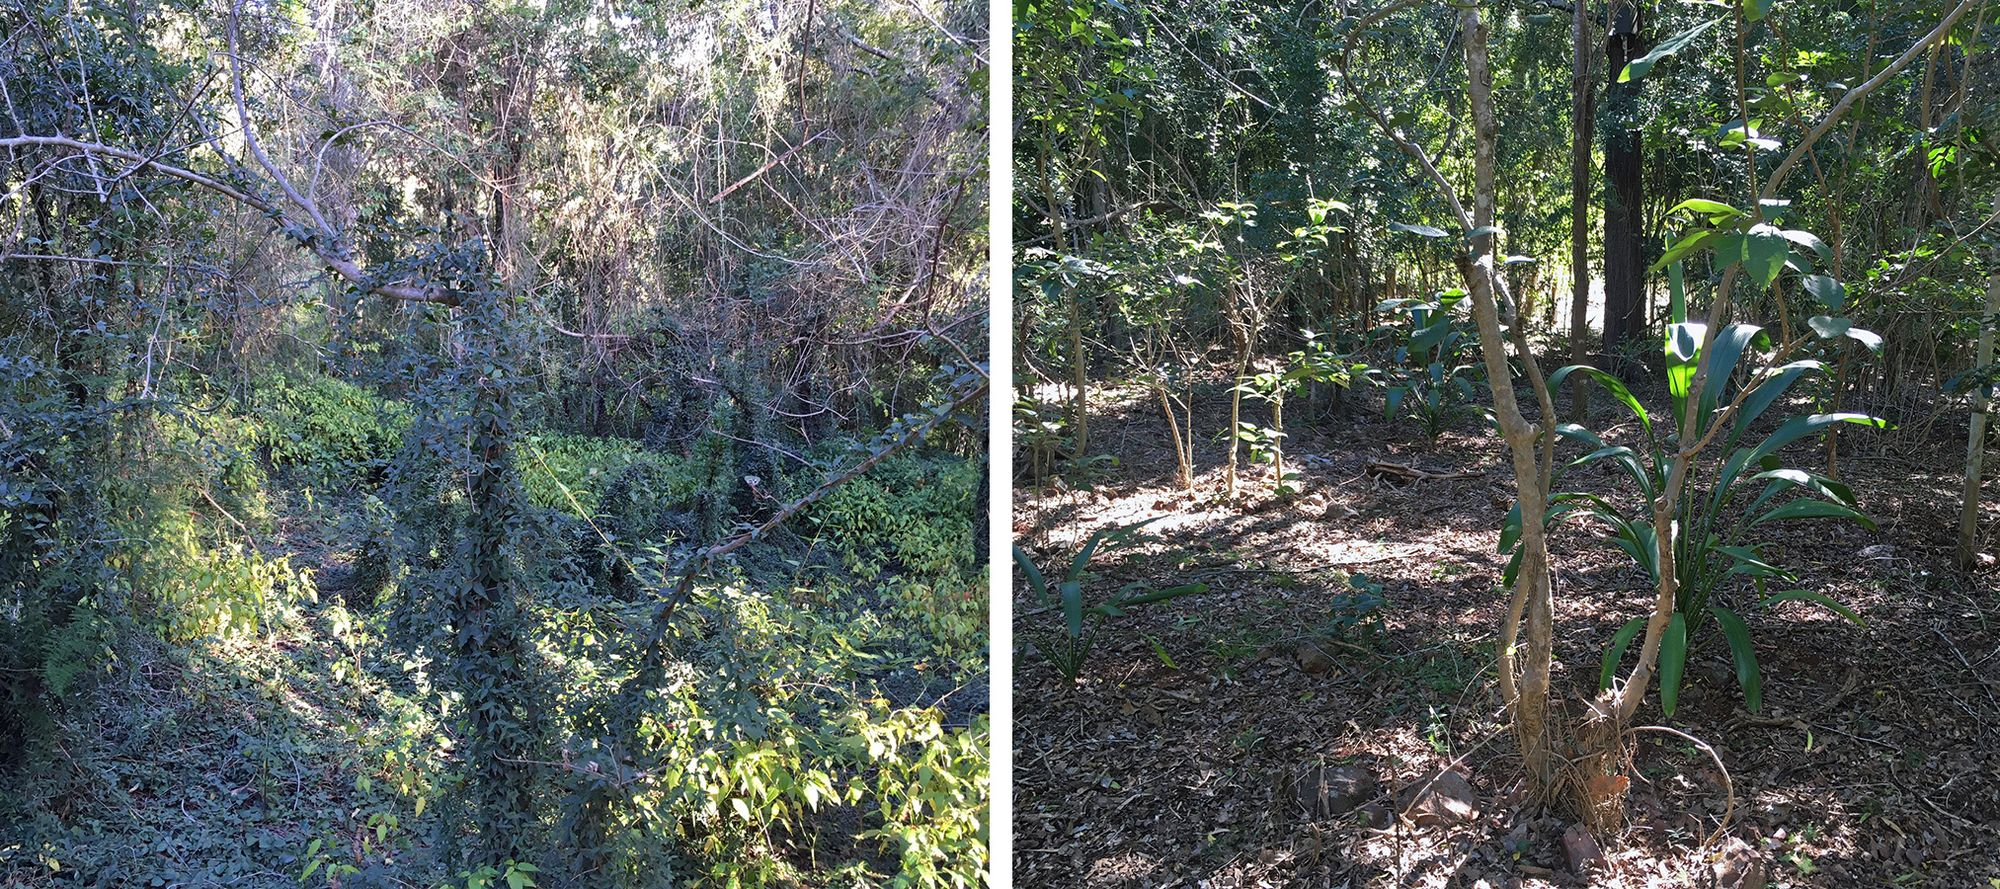 Two photos of the same land before and after restoration. On the left, thick vines are covering bare trees. On the right, leafy trees are surrounded by open ground covered in dried leaves.